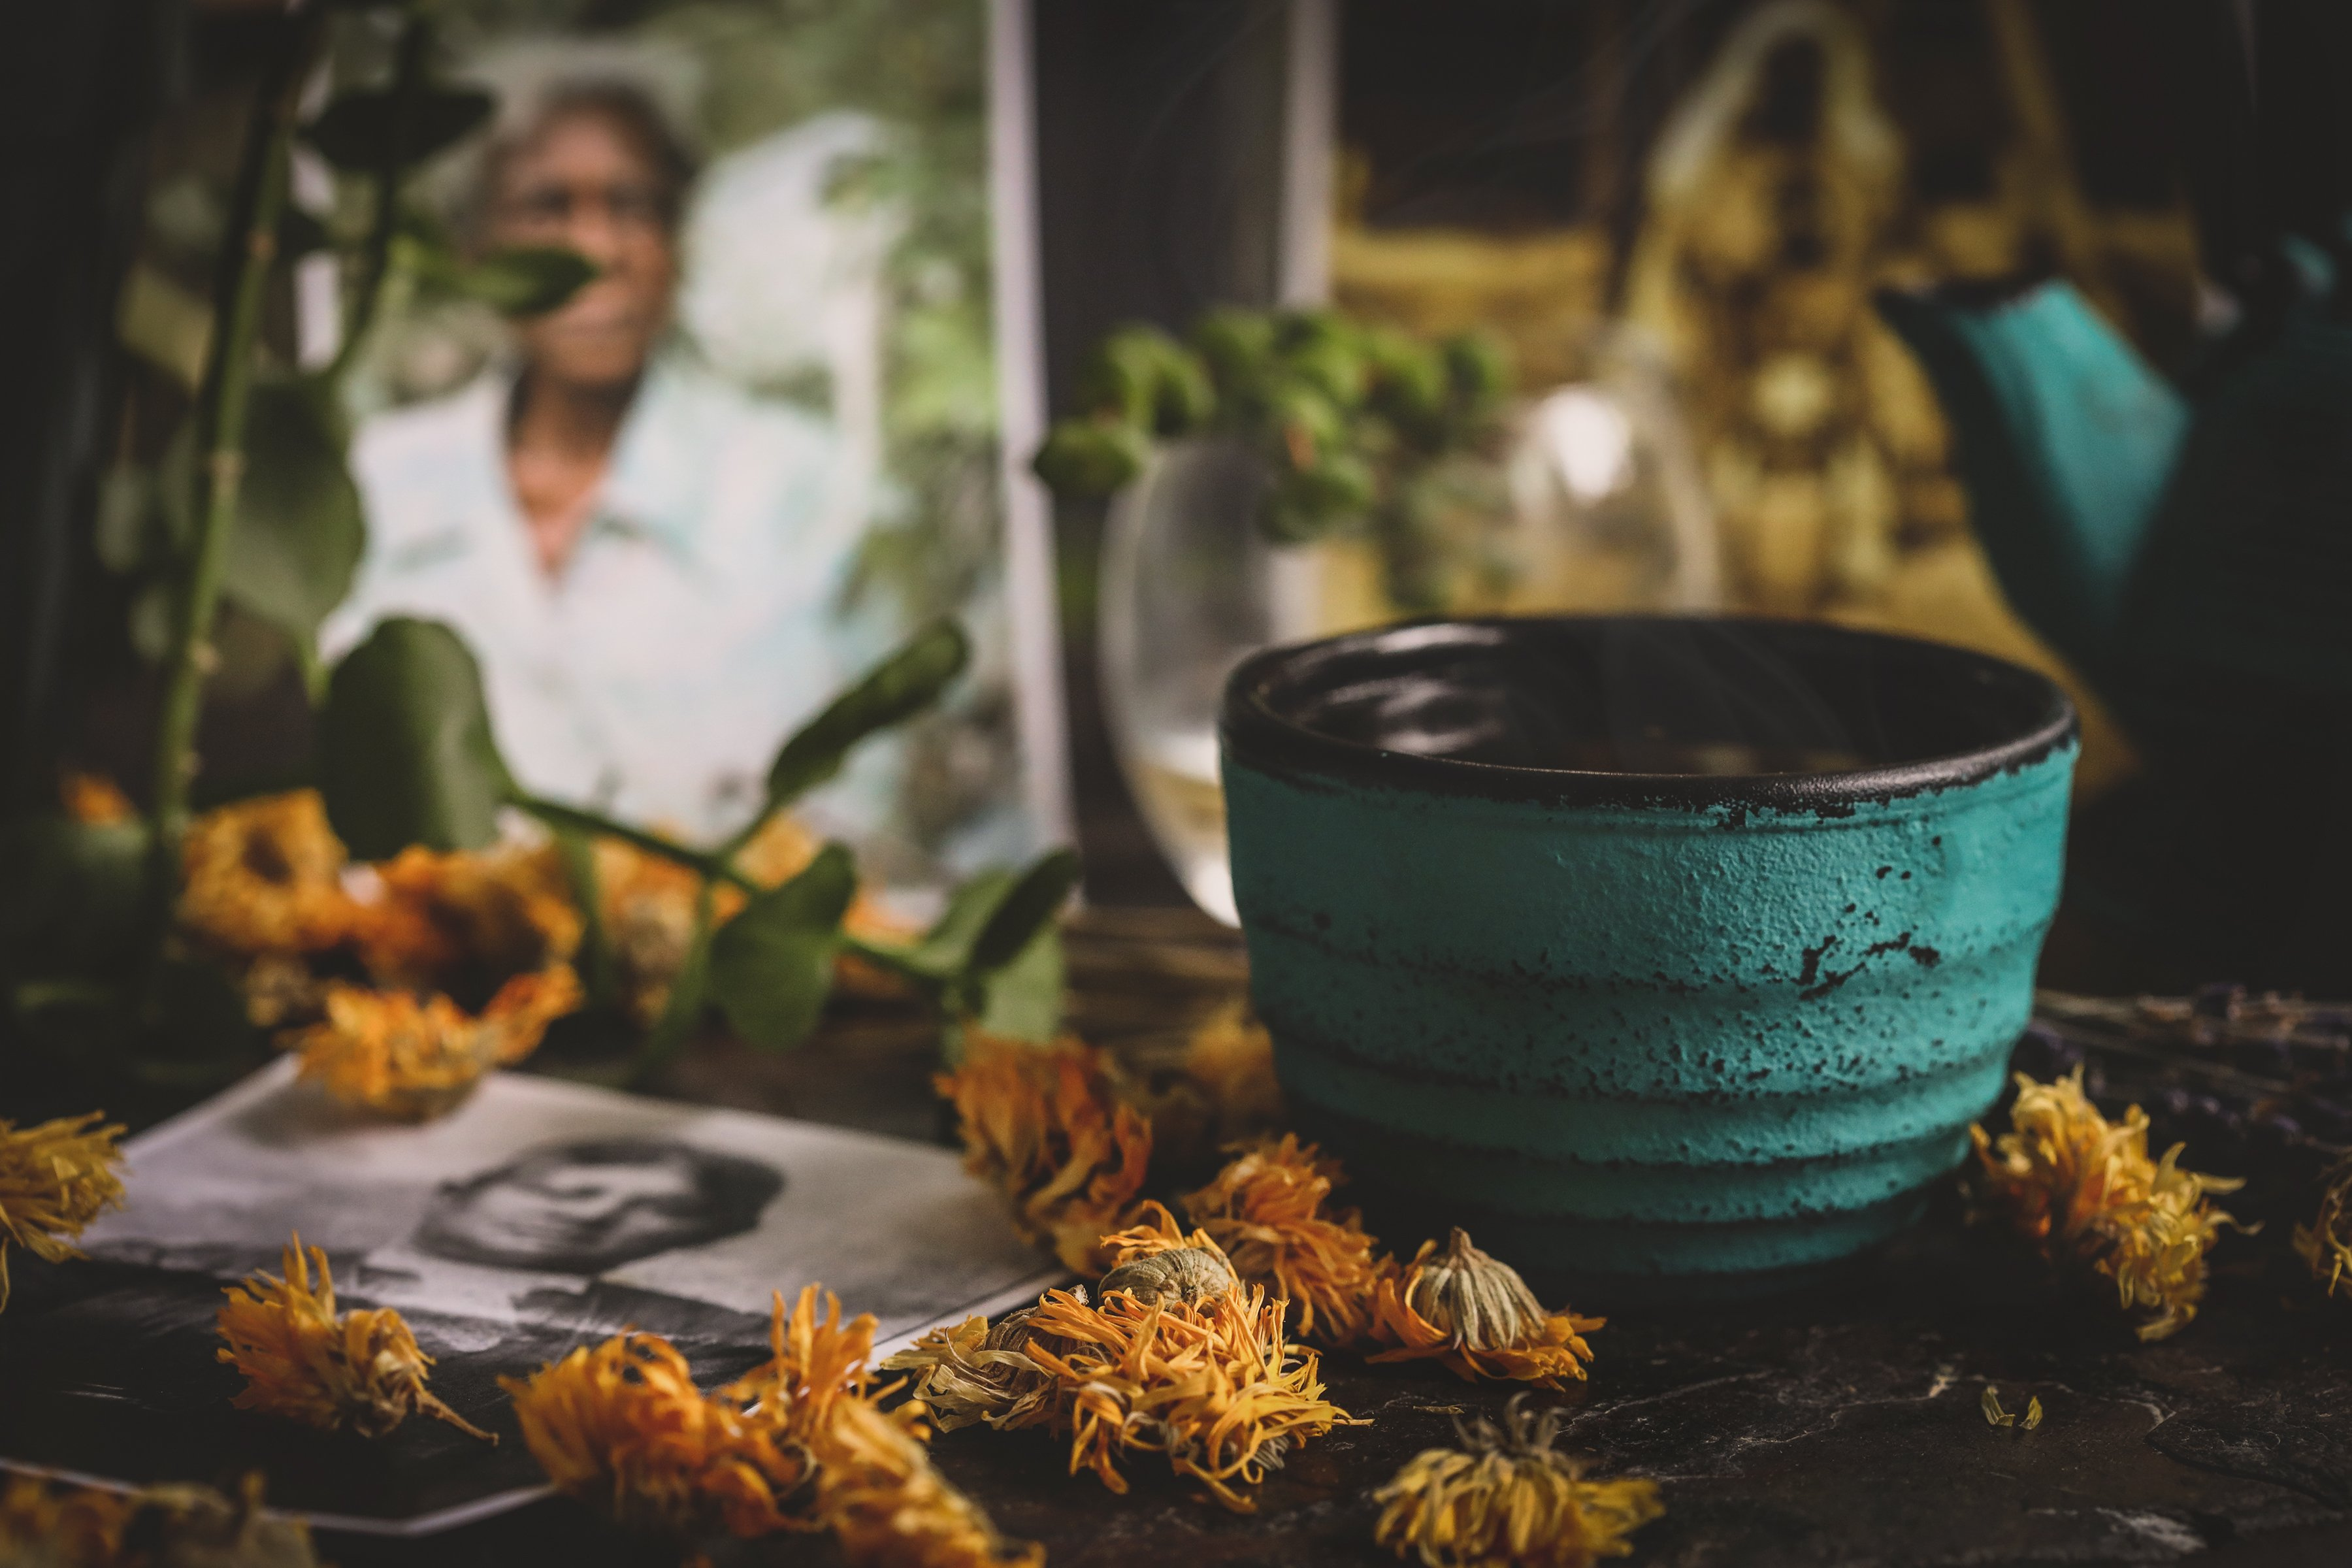 Cast Iron tea cup with flowers and historical photos of folk herbalists of color.